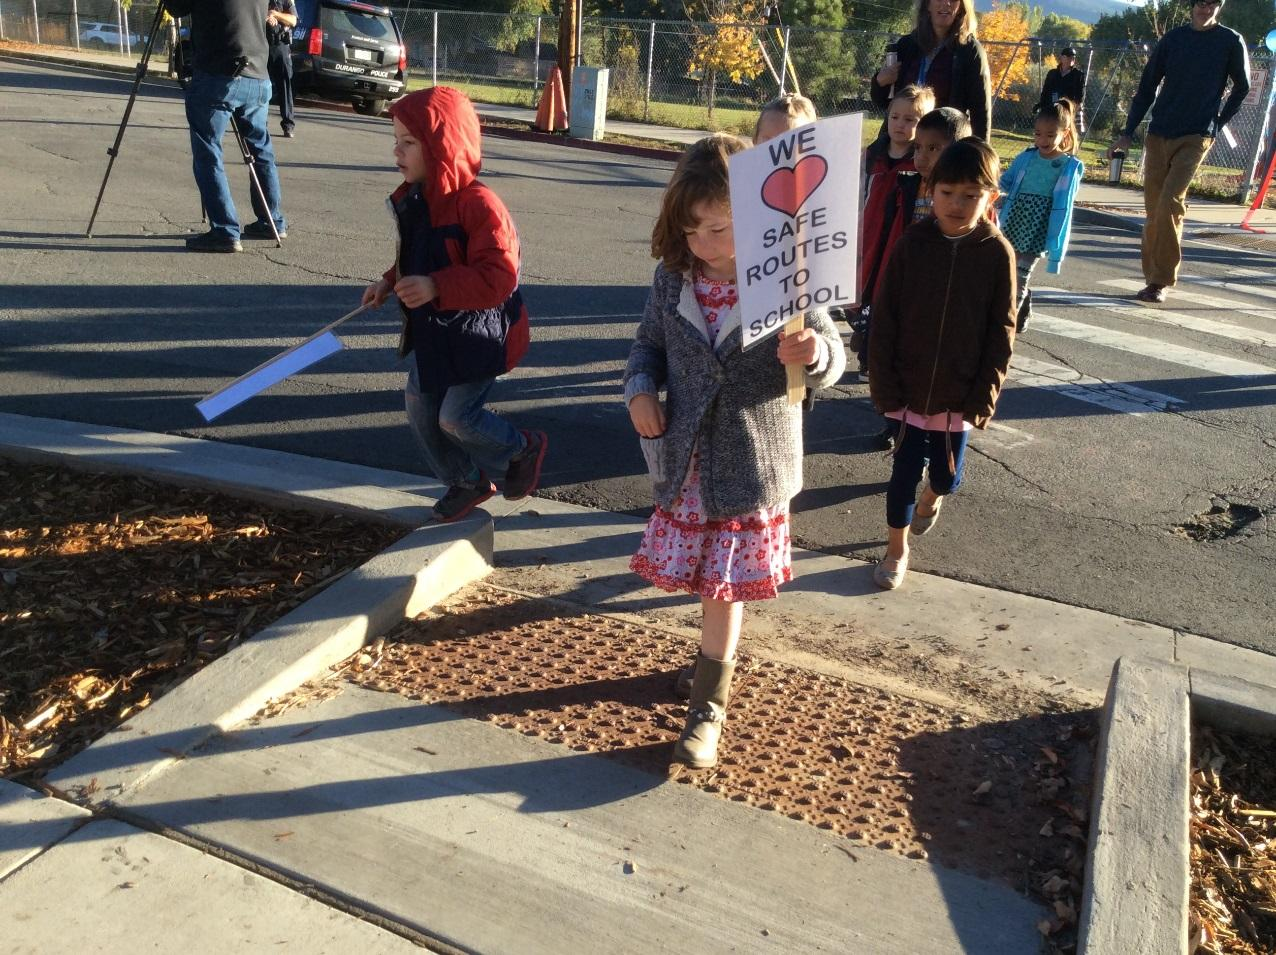 C:\Users\schwantesl\Pictures\R5 Events\Safe Routes to School\IMG_2889.JPG